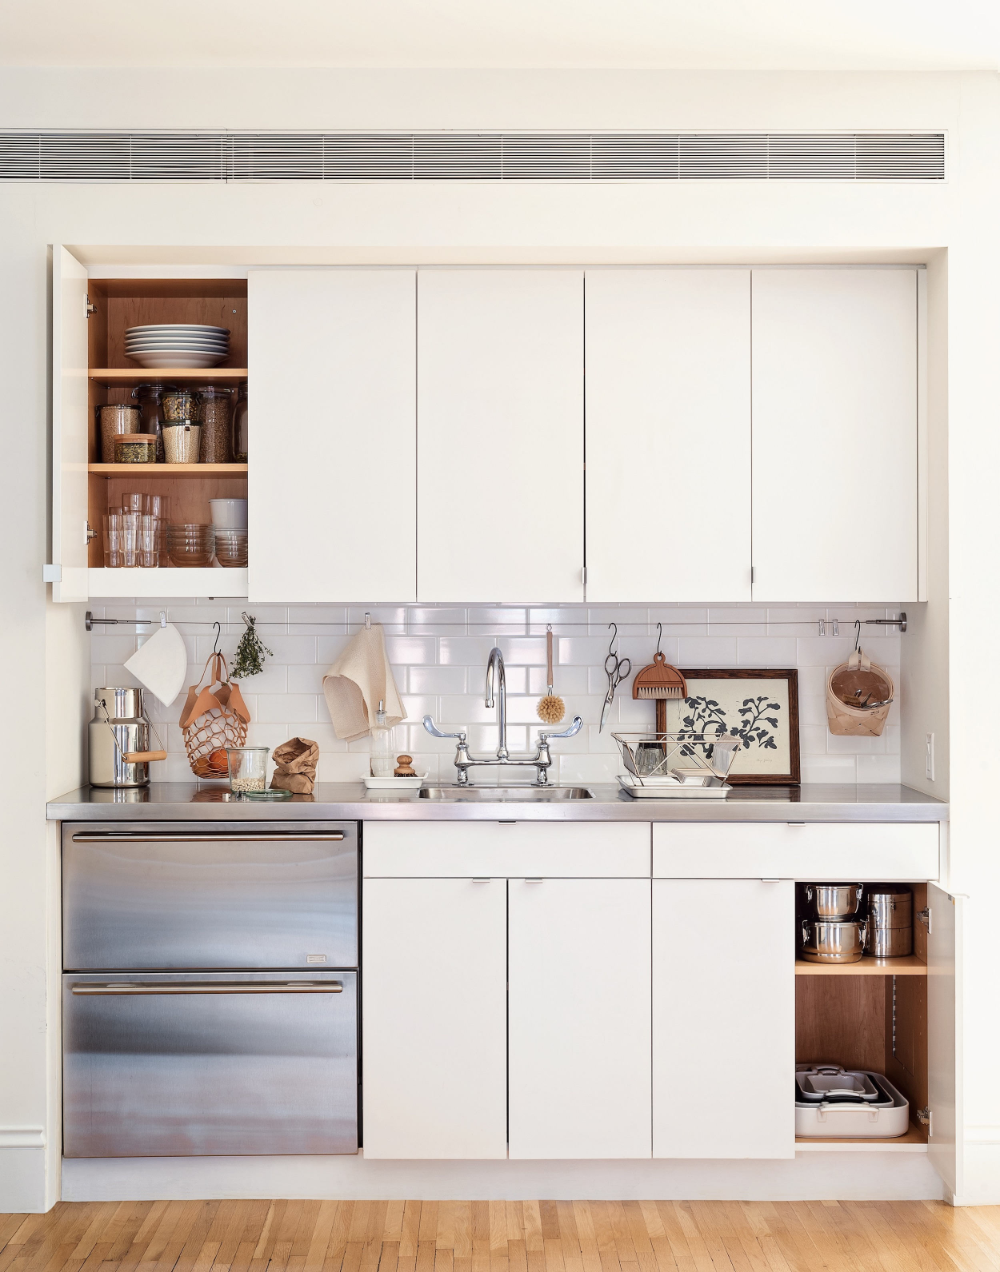 5 Space-Saving Ideas to Steal from a Brooklyn Kitchen, Ikea Hack Included